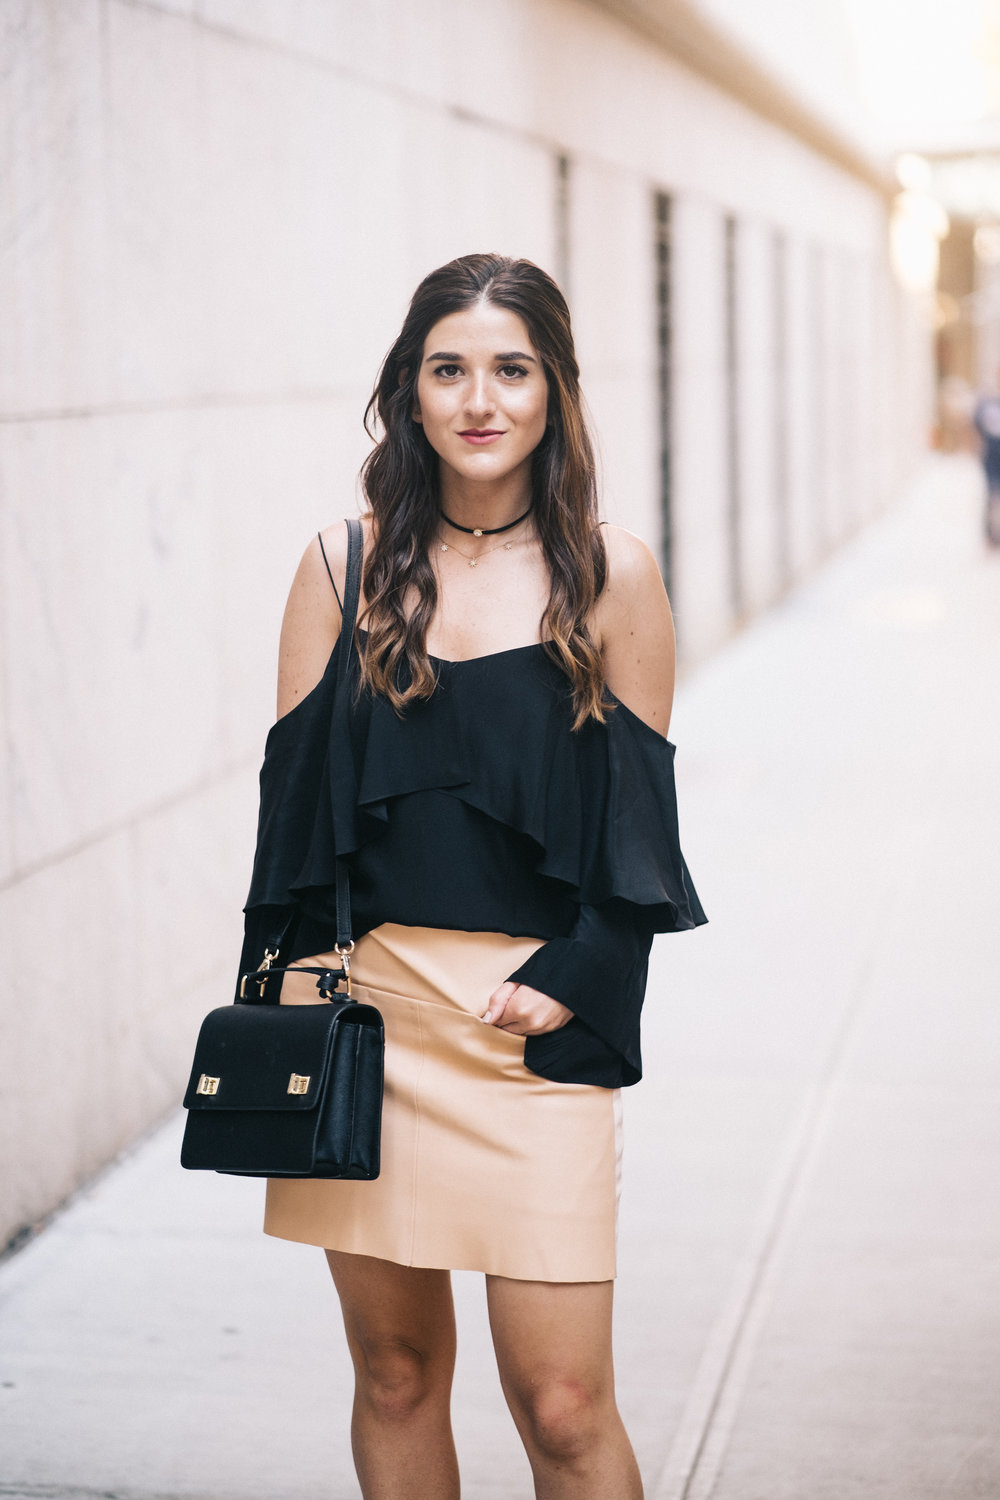 The+Perfect+Everyday+Bag+Henri+Bendel+Louboutins+&+Love+Fashion+Blog+Esther+Santer+NYC+Street+Style+Blogger+Outfit+OOTD+Trendy+Jay+Godfrey+Black+Cold+Shoulder+Top+Pink+Pleather+Skirt+Zara+Ivanka+Trump+Klover+Inspo+Sandals+Heels+Purse+Women+Girl+Hair.jpg